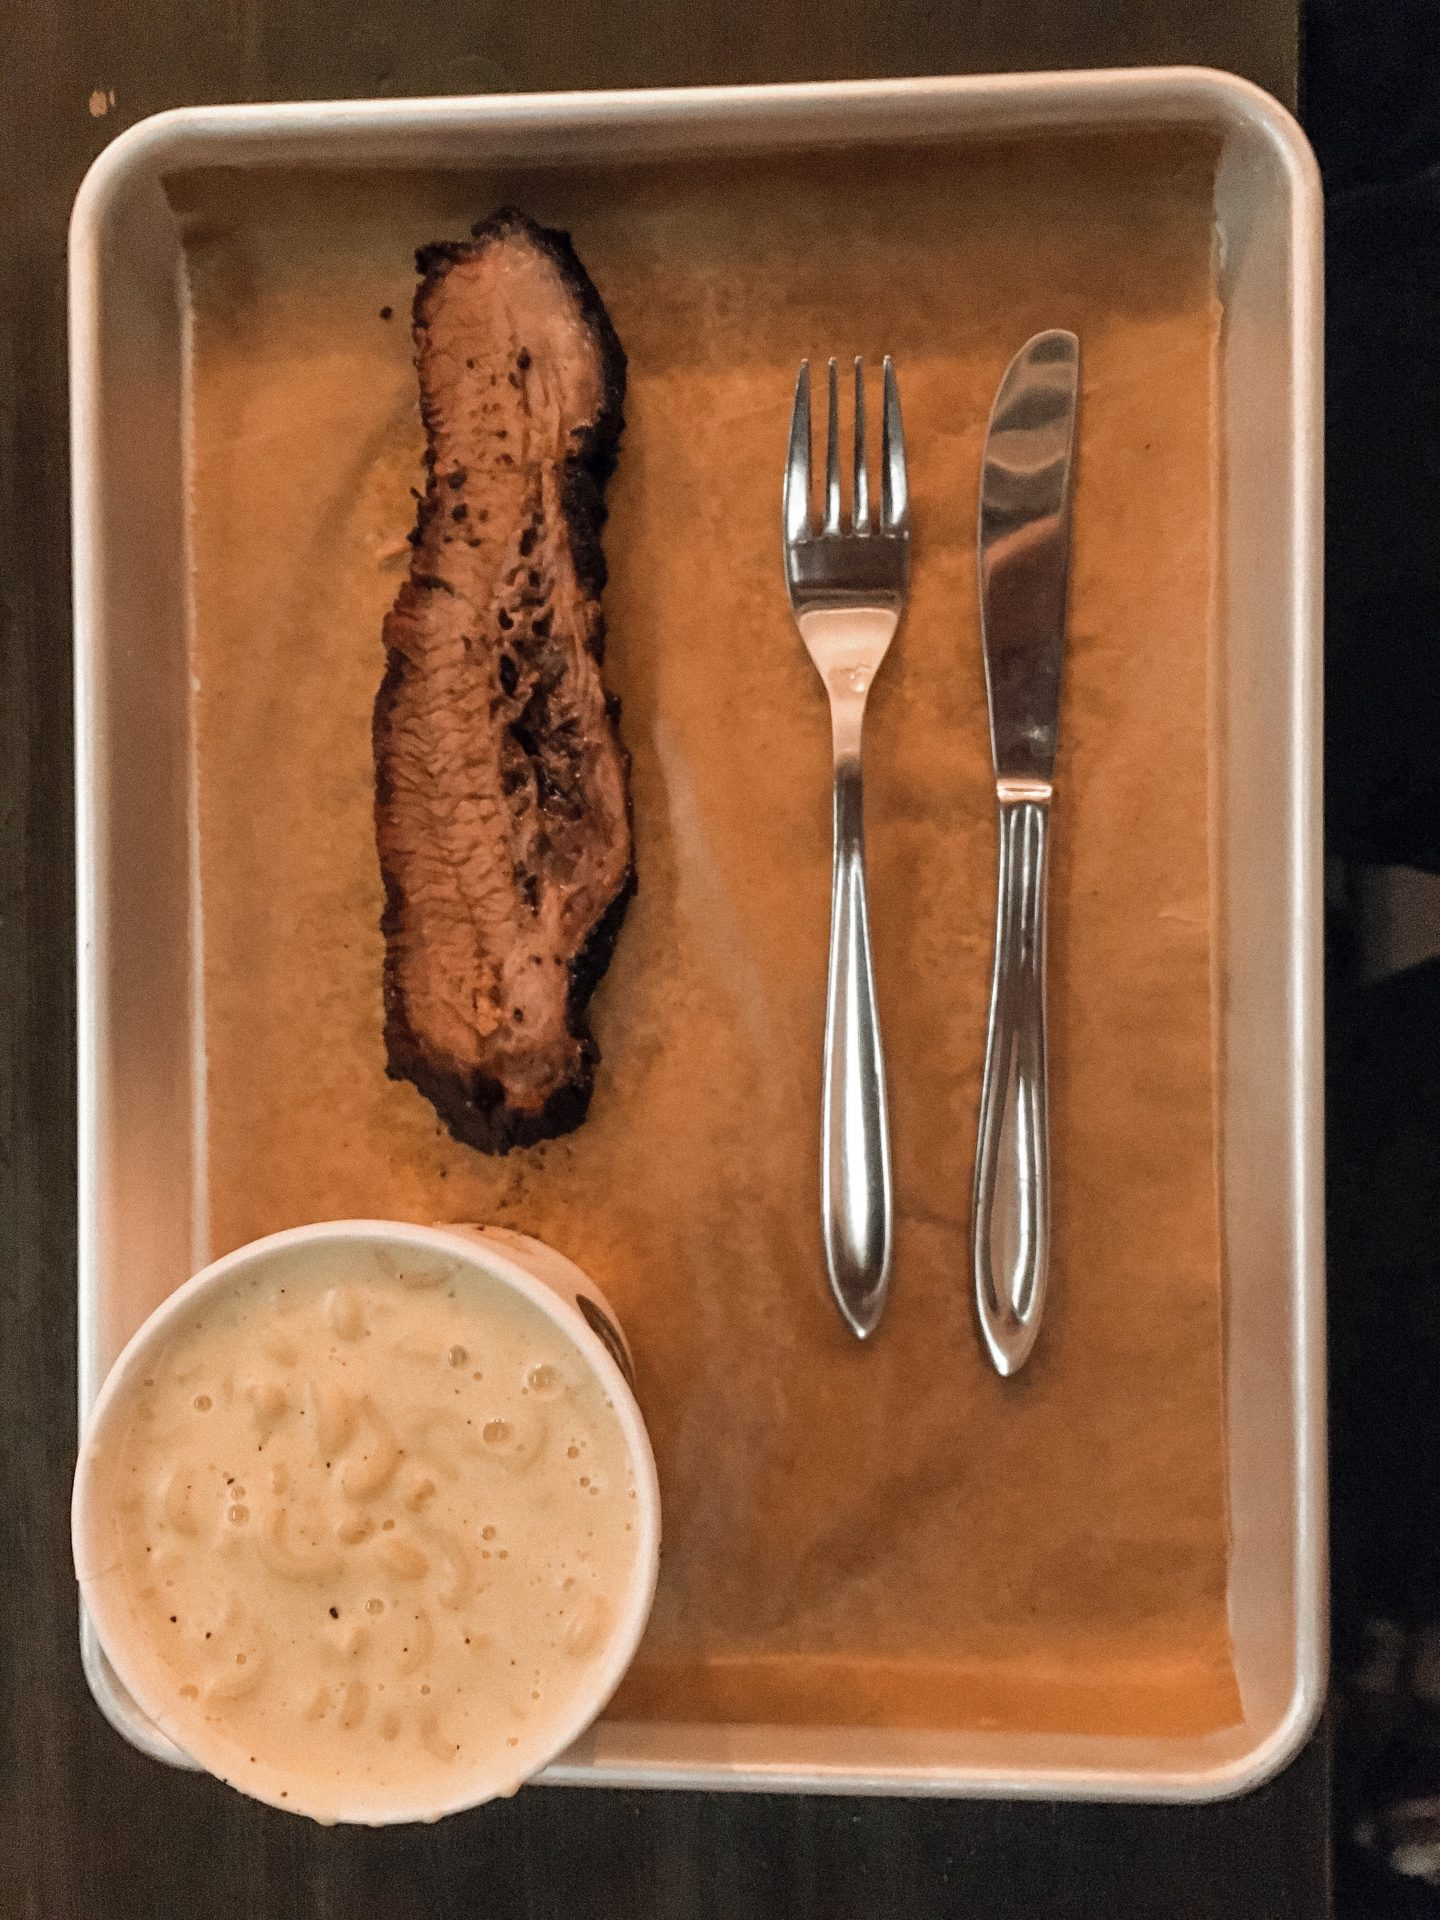 Meat and mac n cheese at Warpigs in Meat District Copenhagen